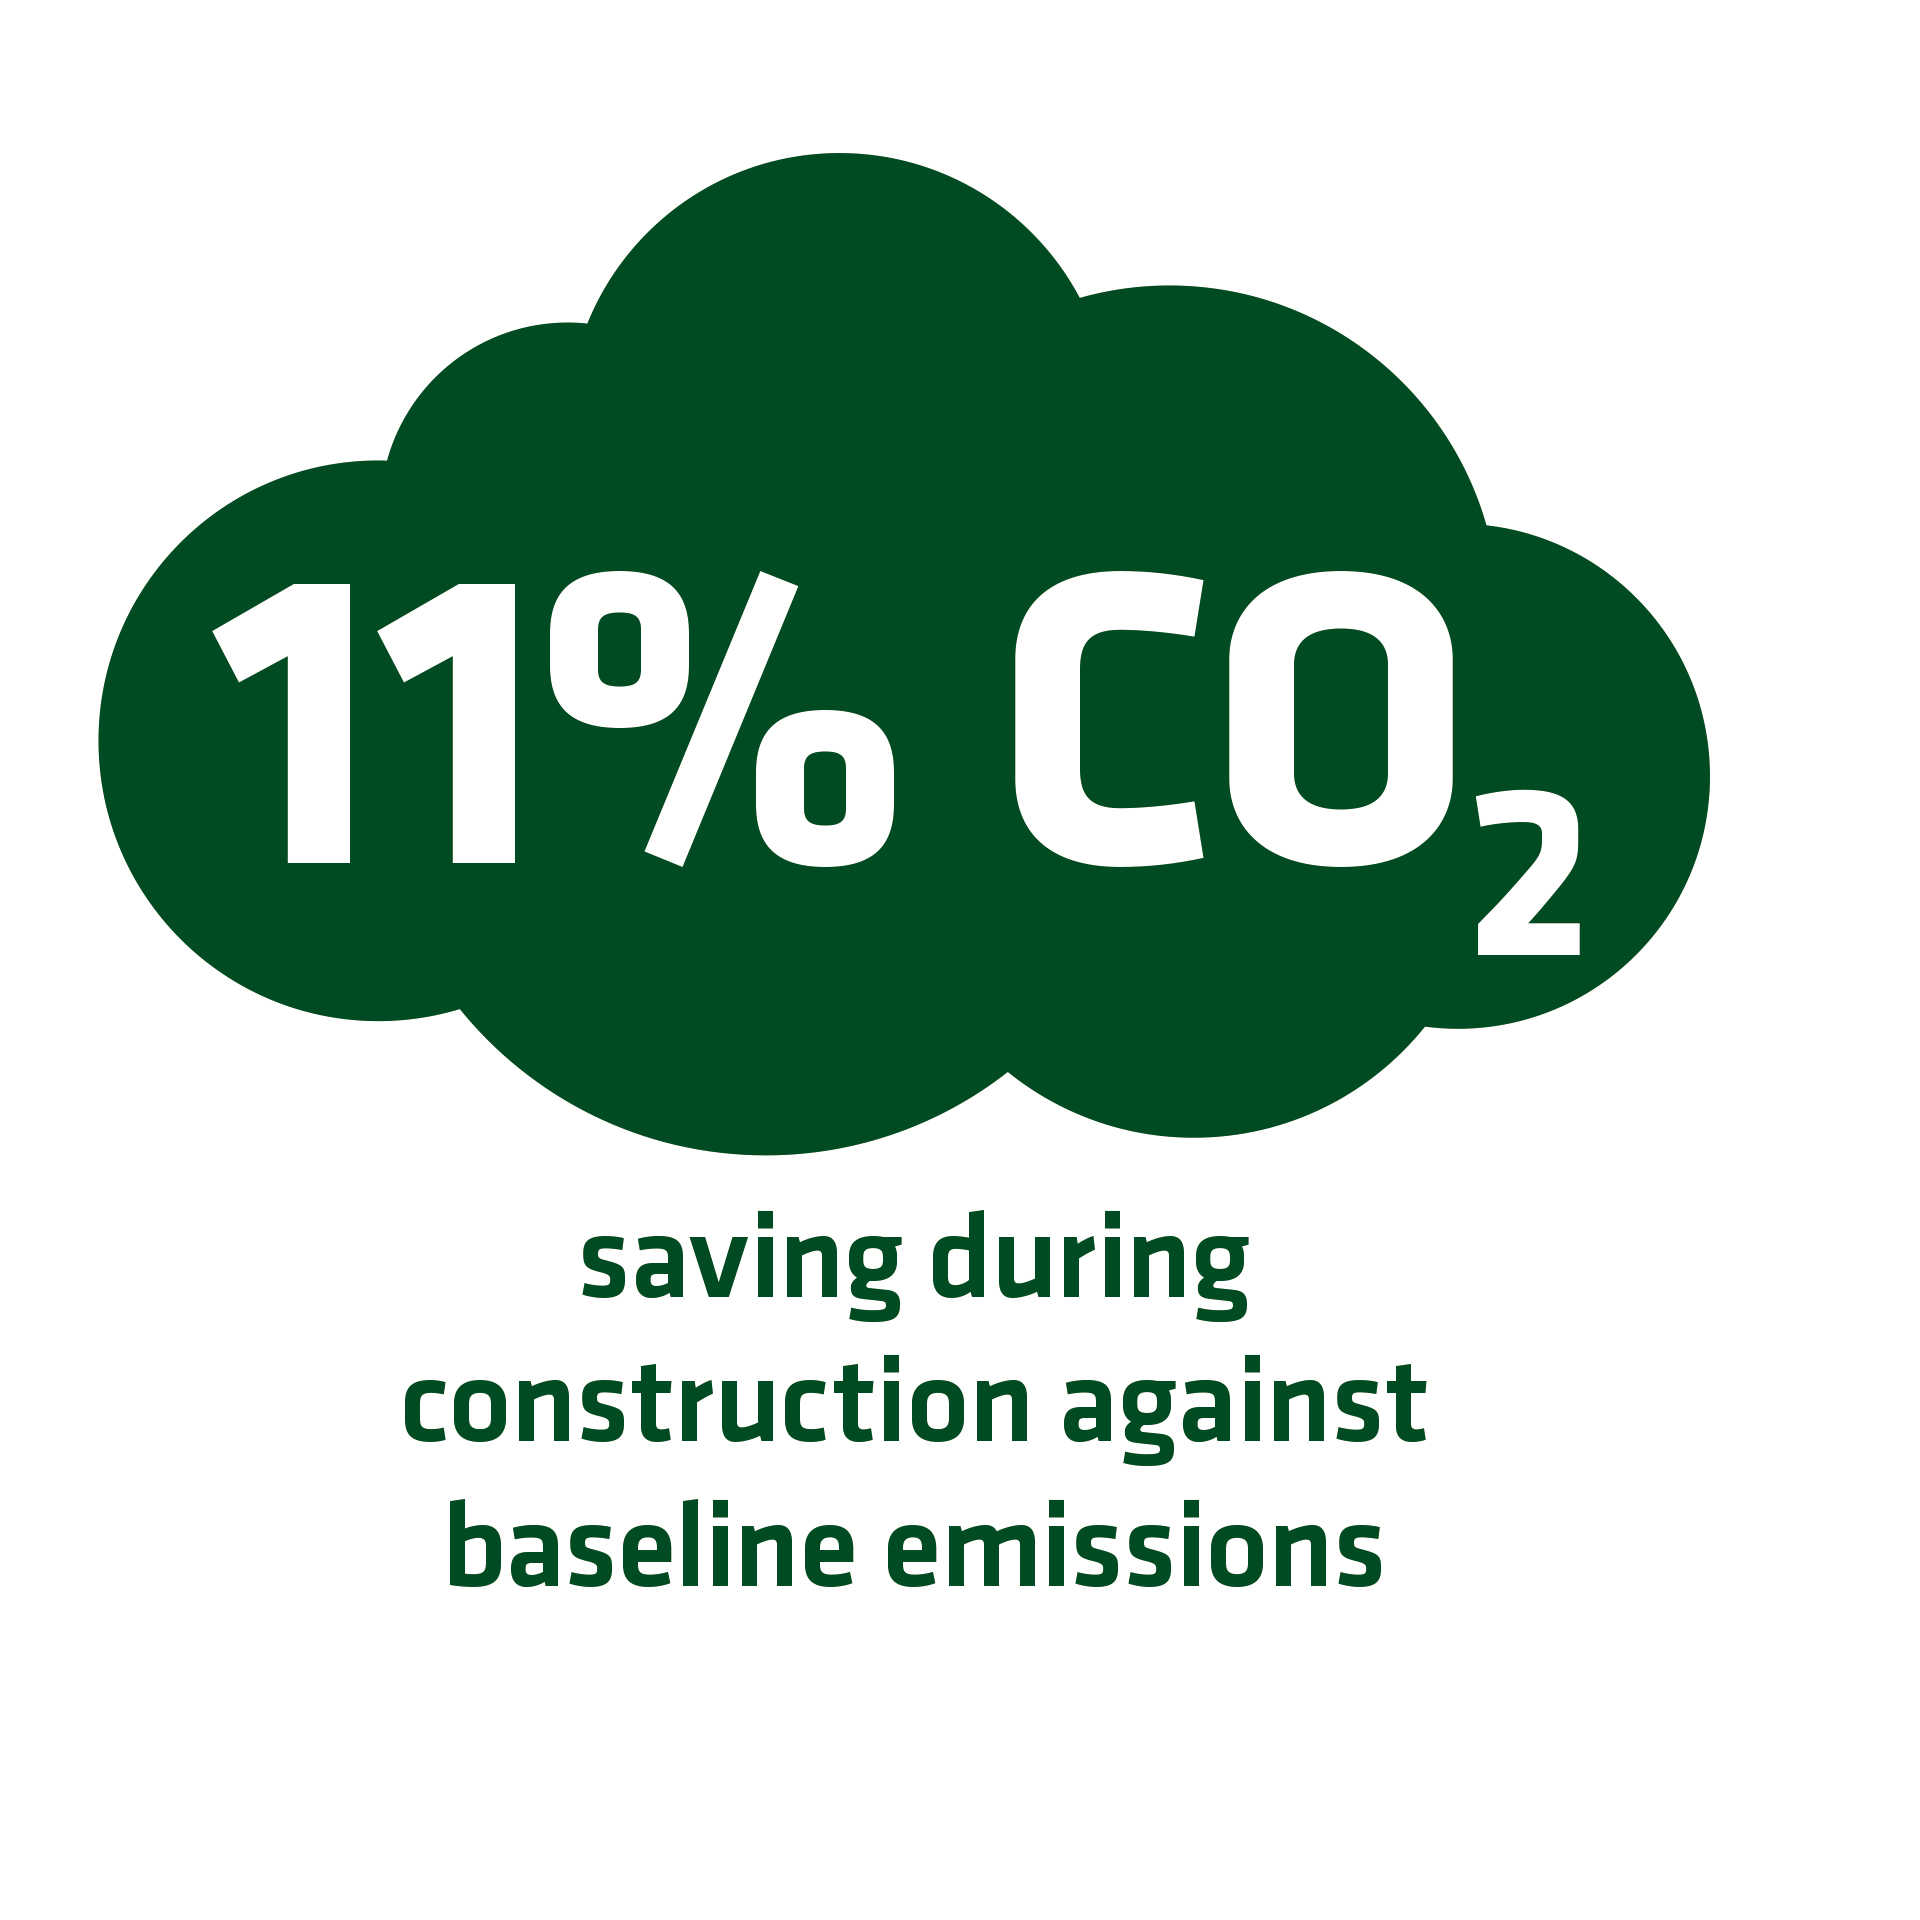 11 per cent CO2 saving during construction